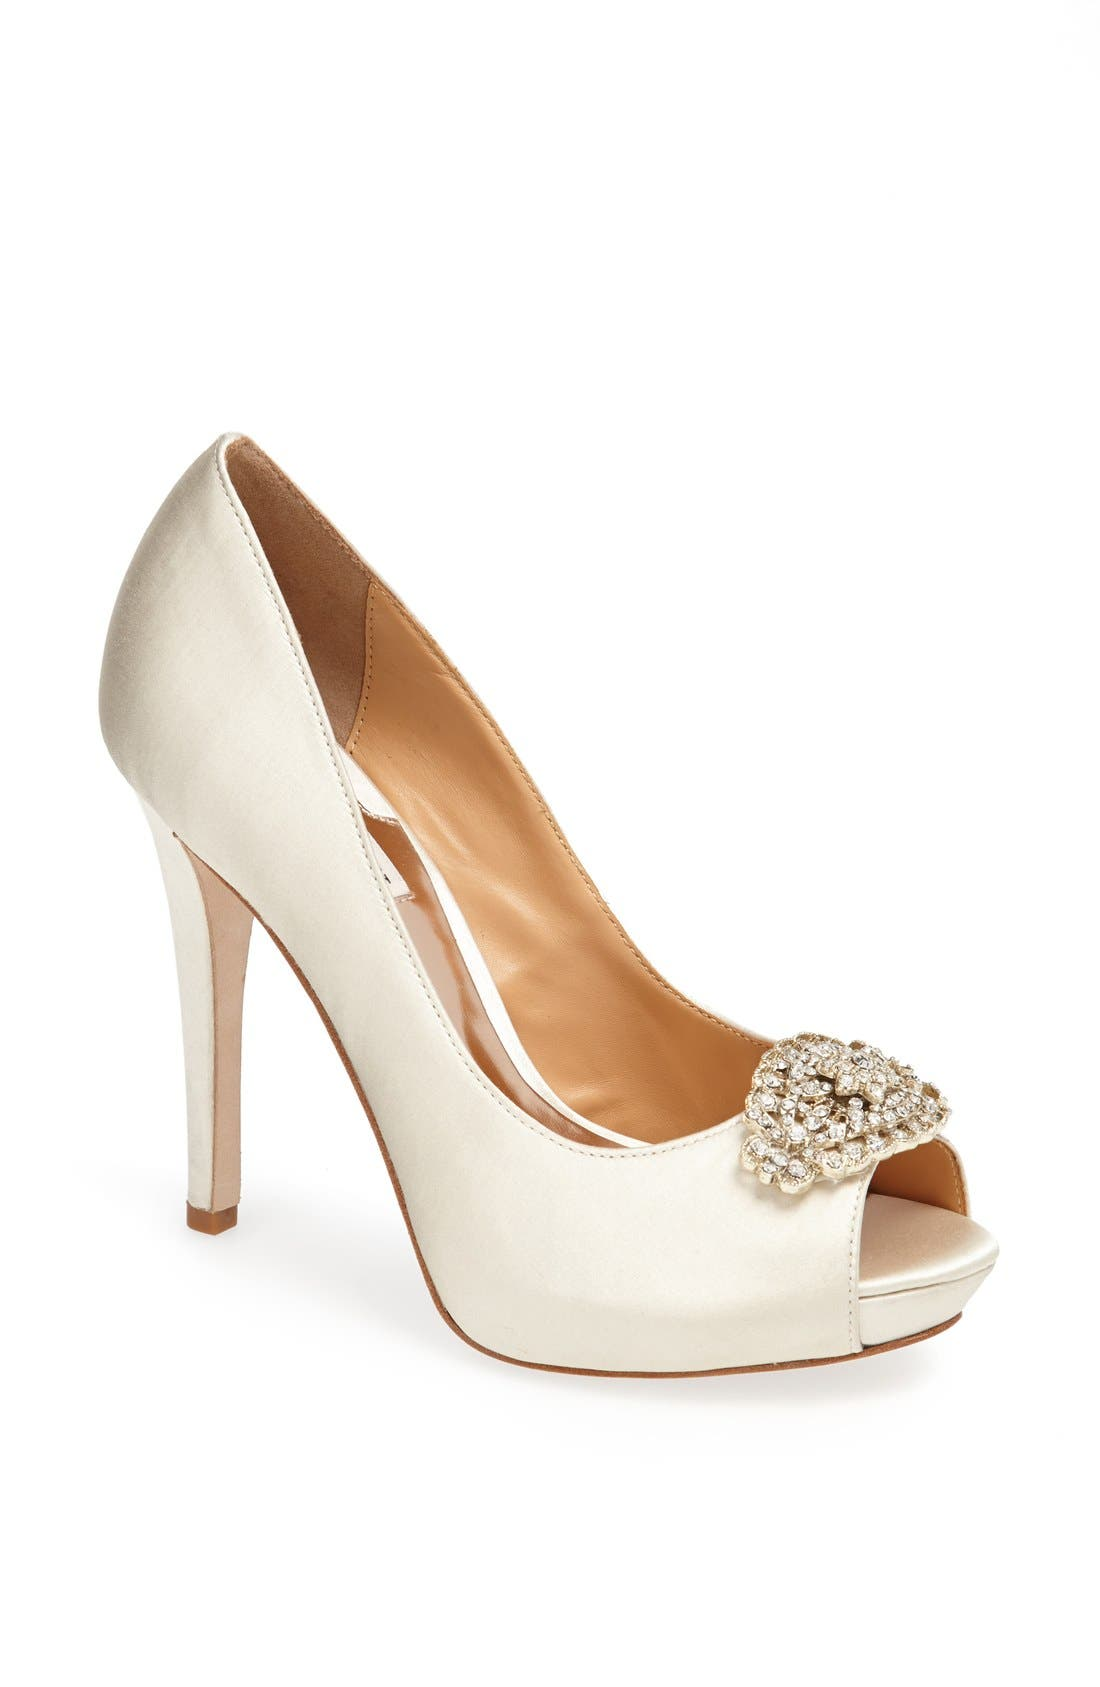 Alternate Image 1 Selected - Badgley Mischka 'Goodie' Pump